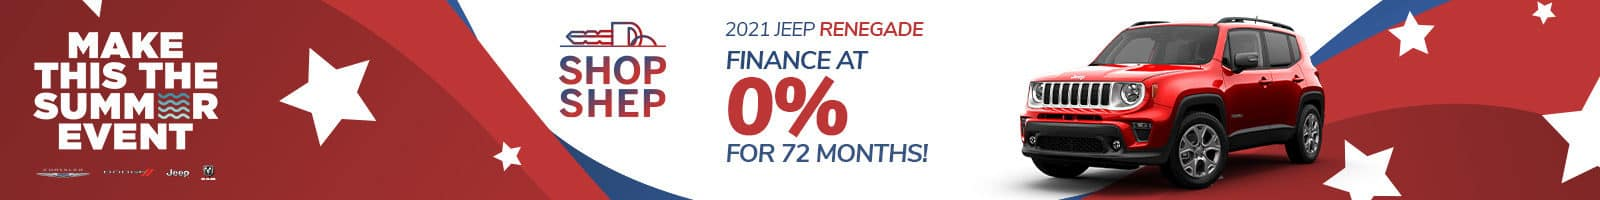 Special Financing on Jeep Renegade near Auburn, Indiana